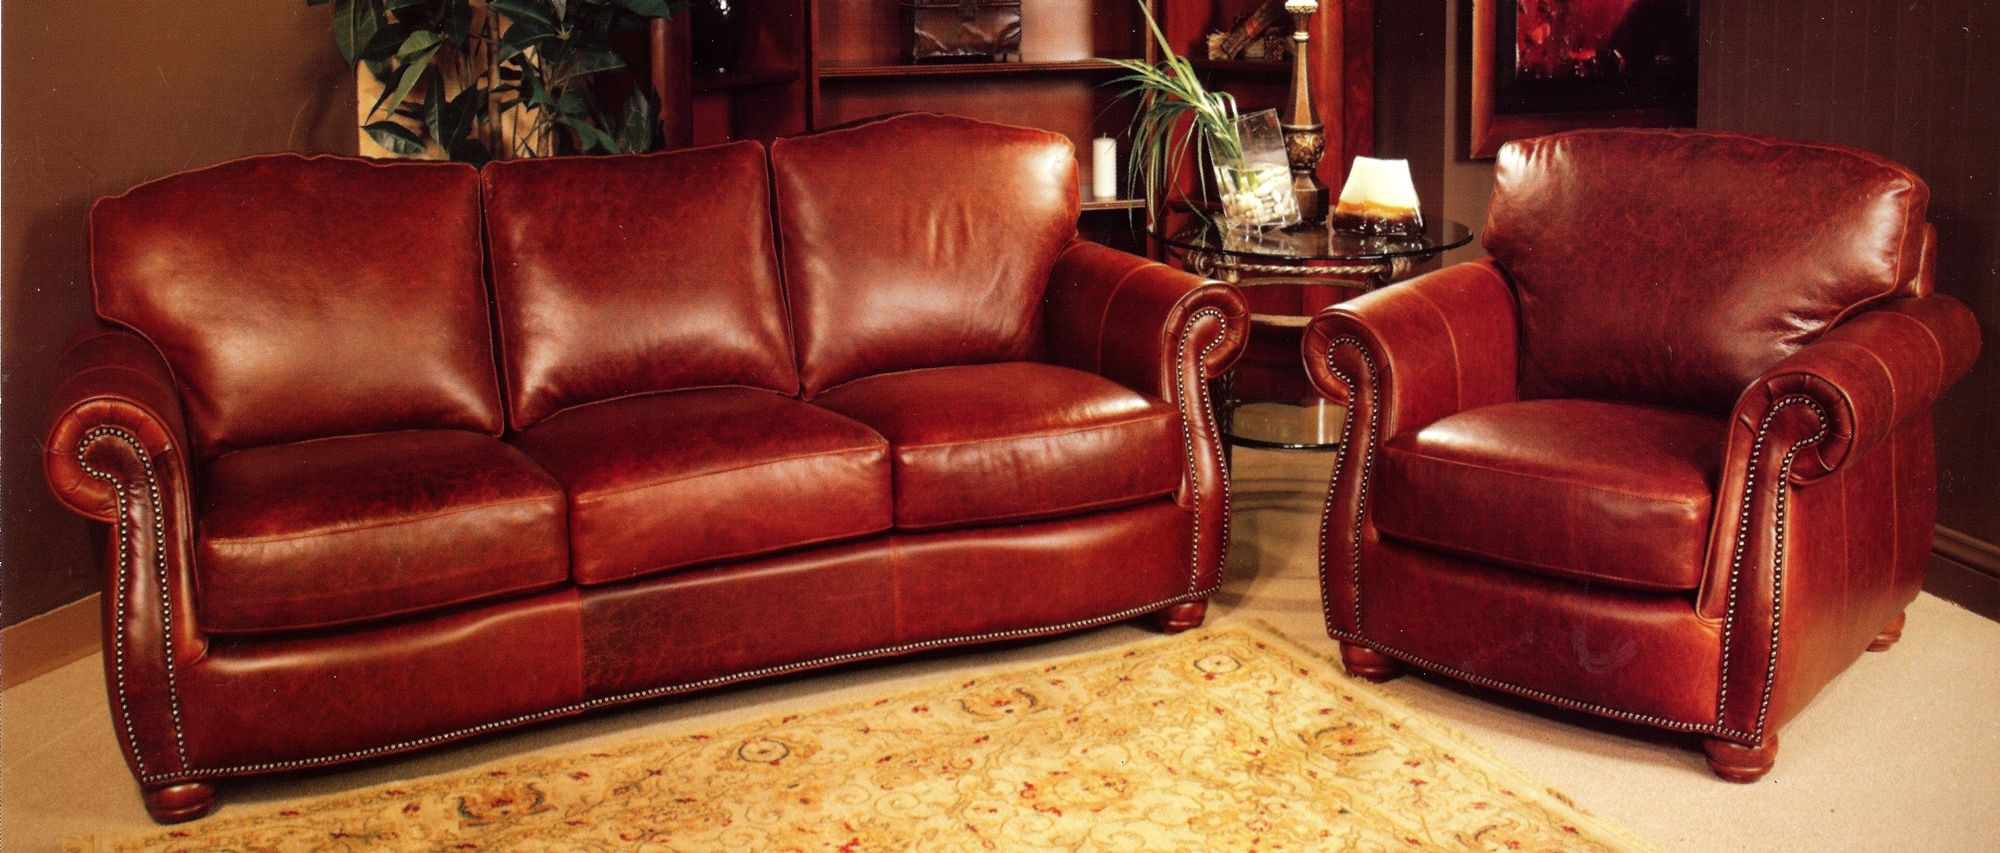 Nice Rustic Red Leather Sofa And Rustic Red Leather Chair With Rustic Nail Head  Trim